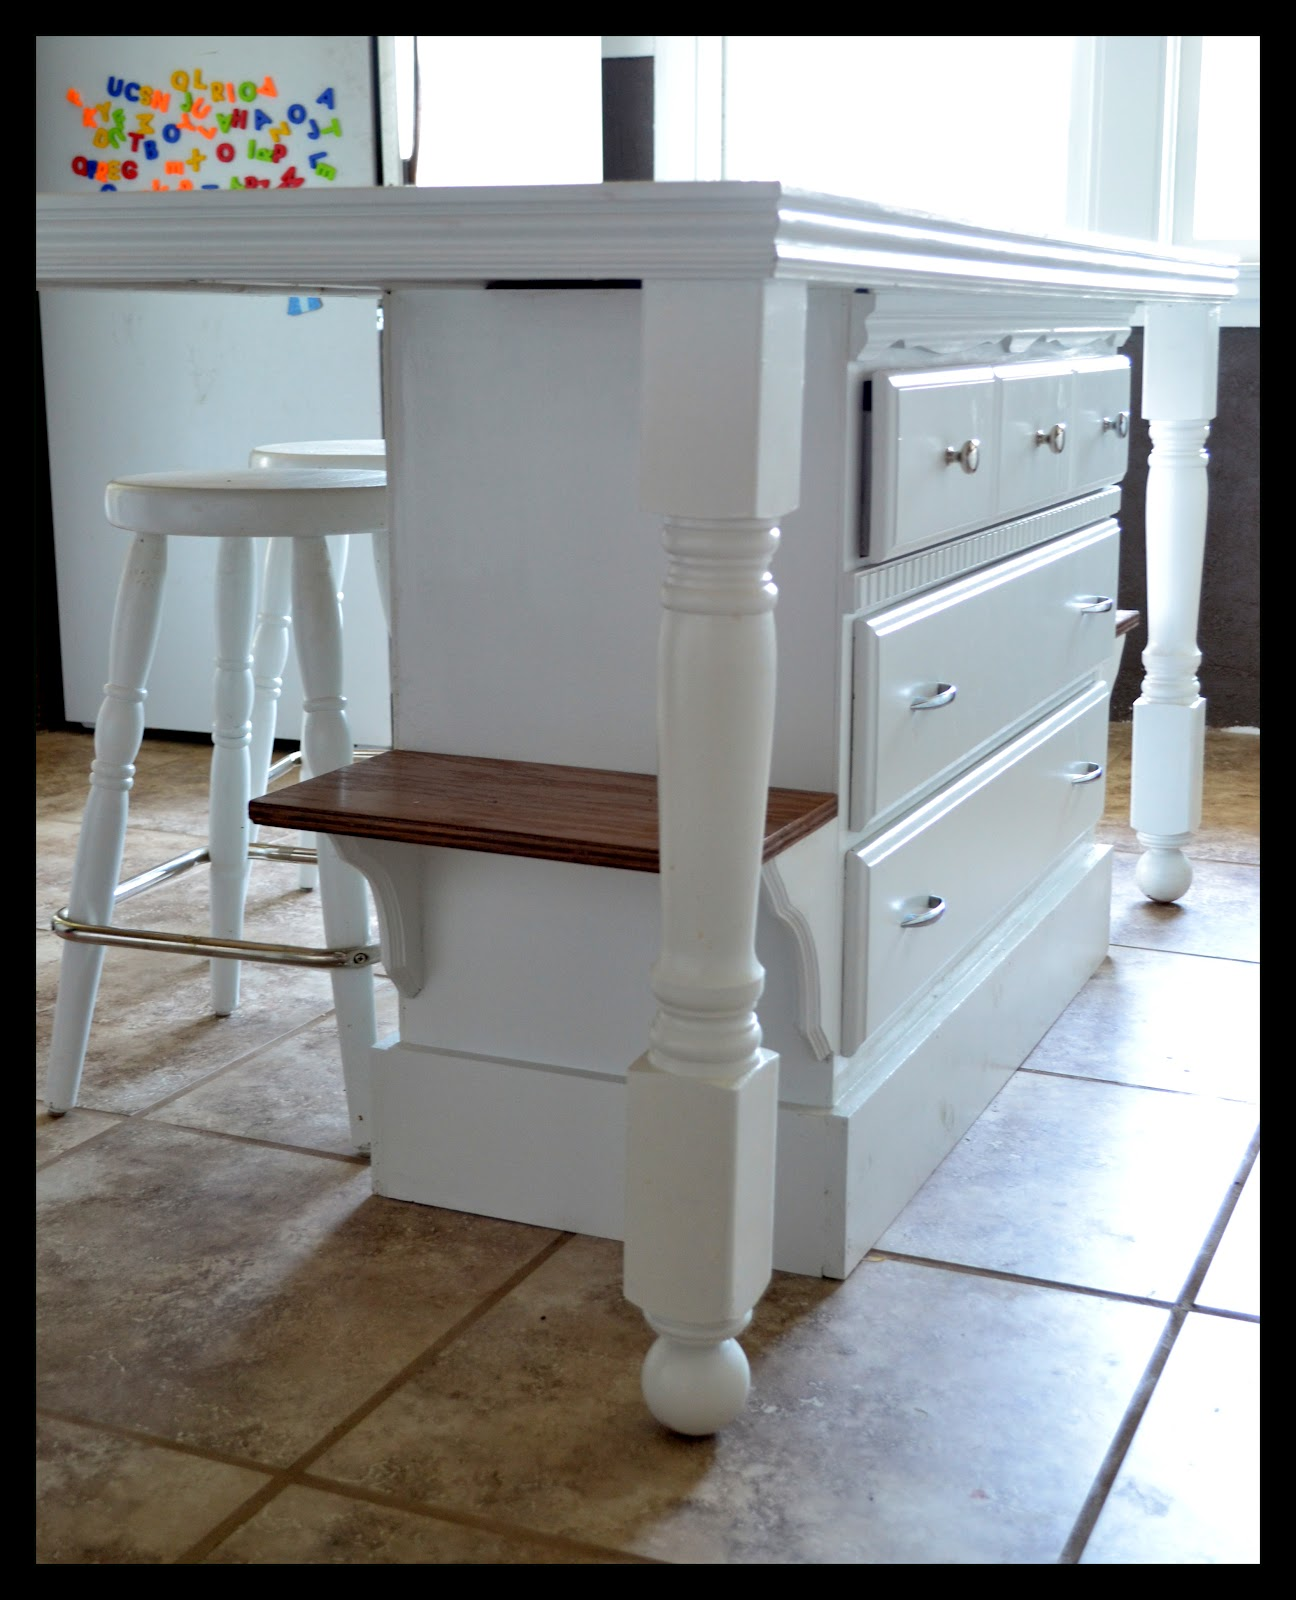 Kitchen Islands For Small Kitchens: Small Town Small Budget: Custom Kitchen Island